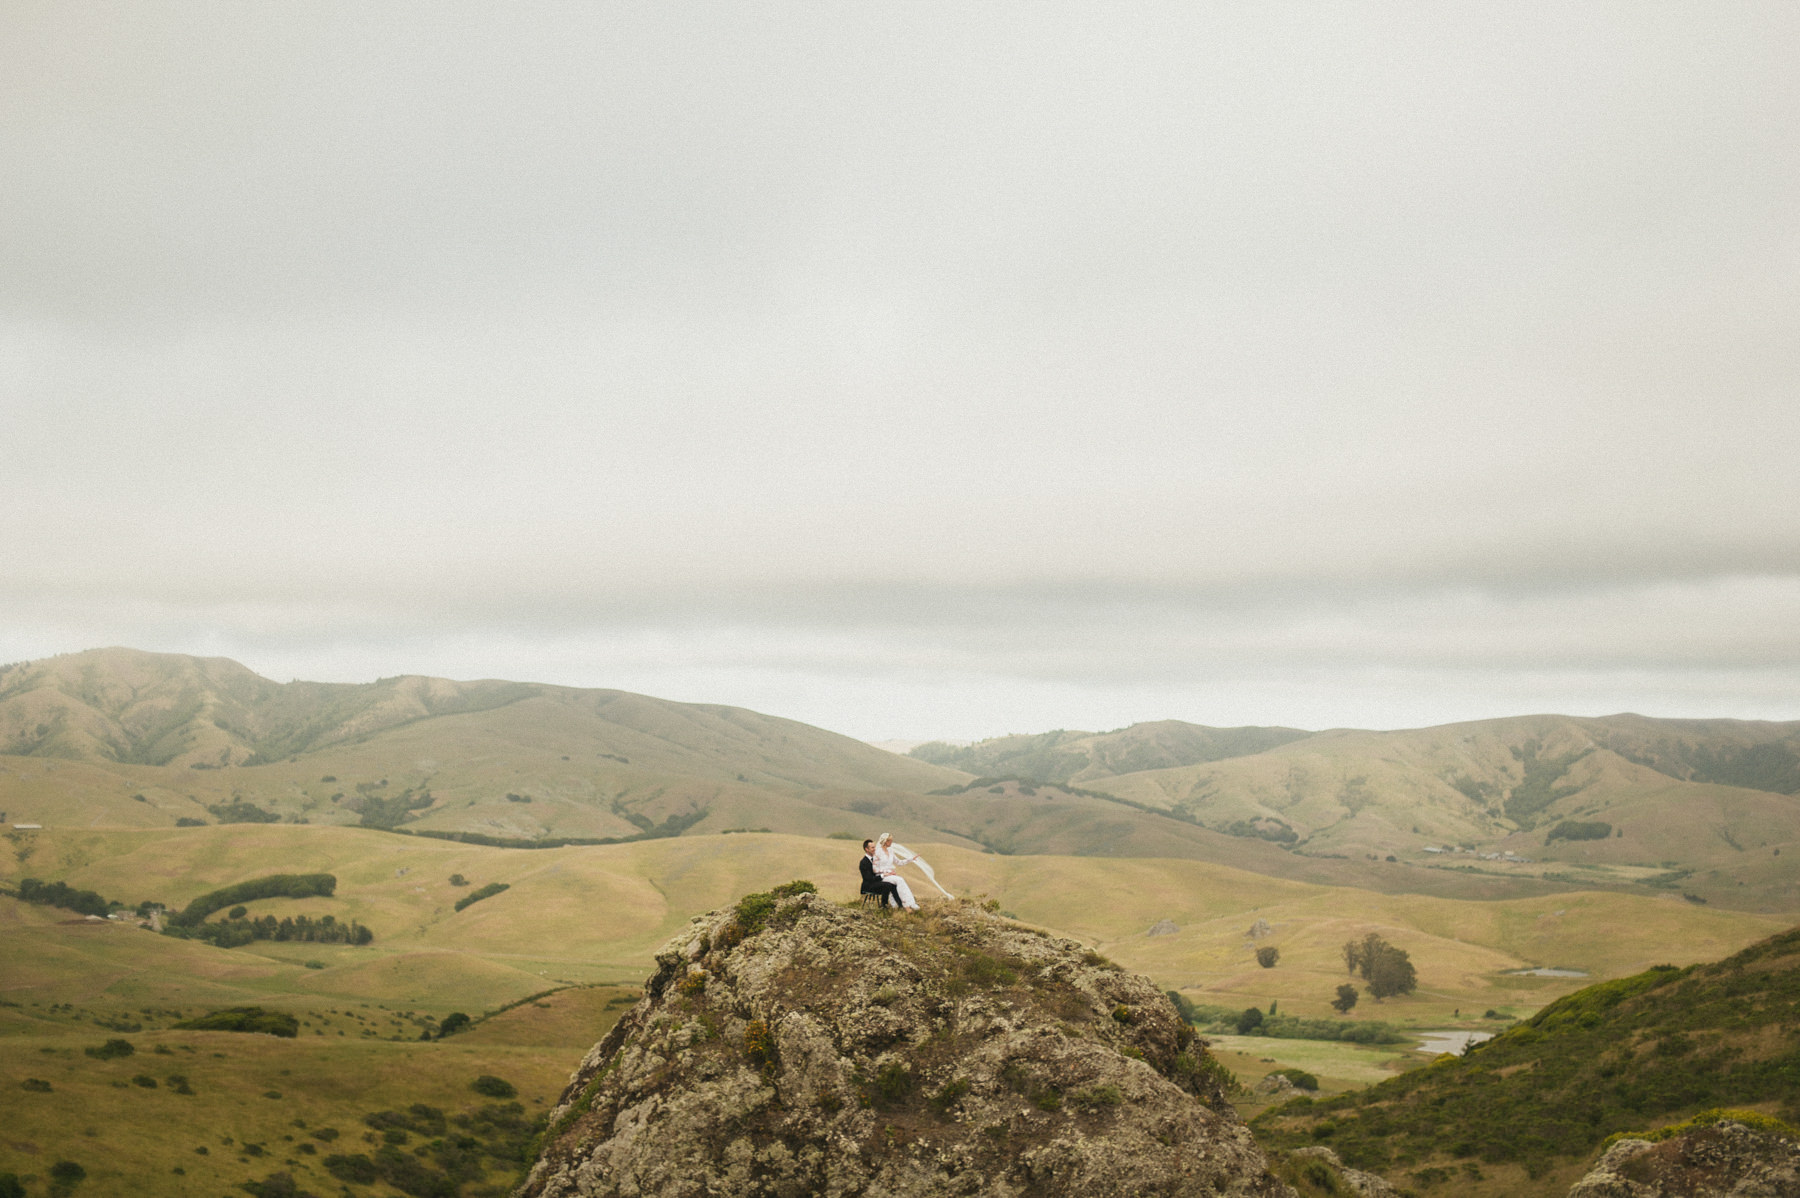 Daring Wanderer Photography - Daring Wanderer - Nicasio Valley - Point Reyes Wedding - California Wedding Photographer - Point Reyes Wedding portraits - Nicasio Valley Wedding - love - wedding portraits - wedding shoot - california - california wedding - wedding dress - temperley london - bohemian wedding - sailcloth tent - tent wedding - diy wedding - san francisco wedding photographer - adventure wedding photographer - travel photography